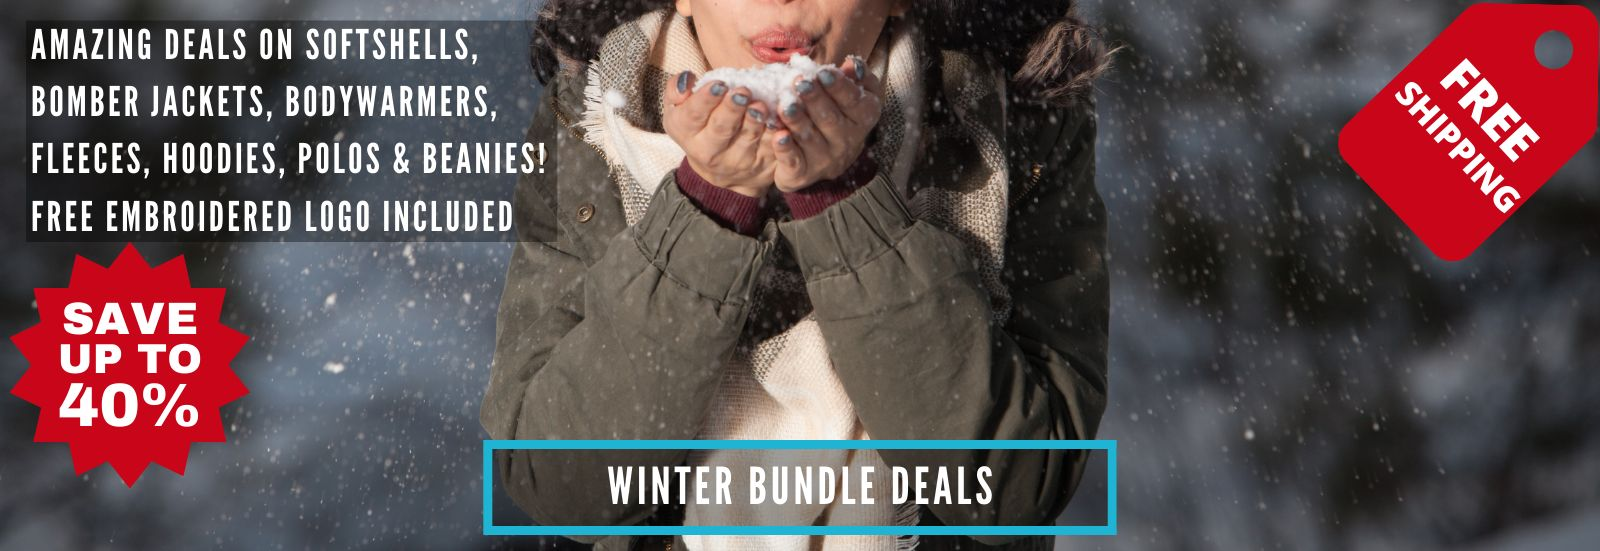 Winter Bundle Deals